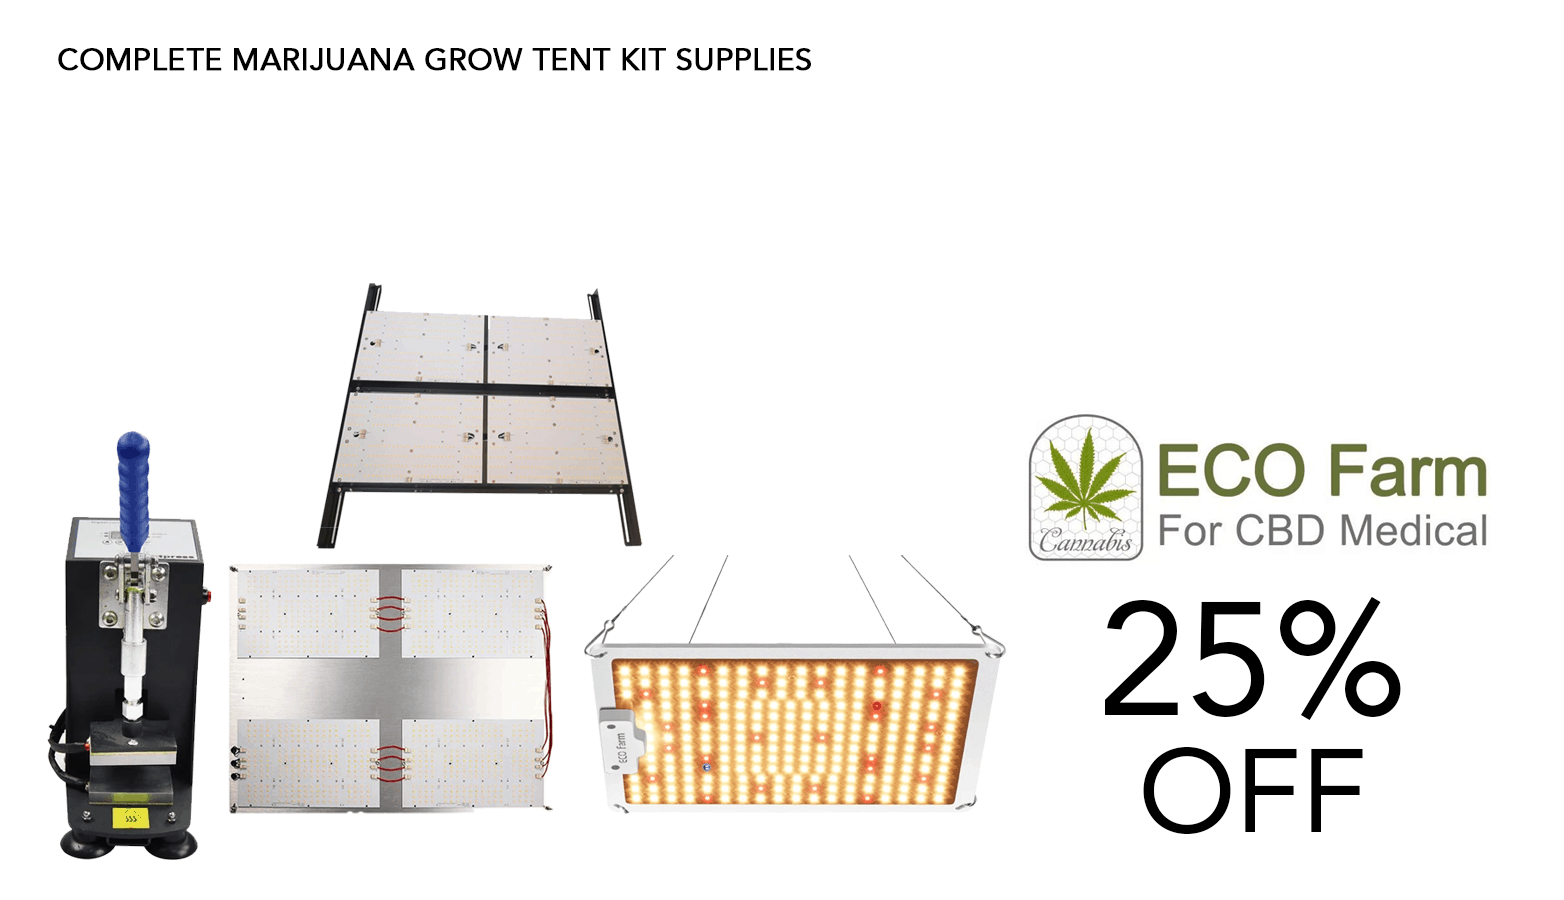 ECO Farms Cannabis Grow Offer Website